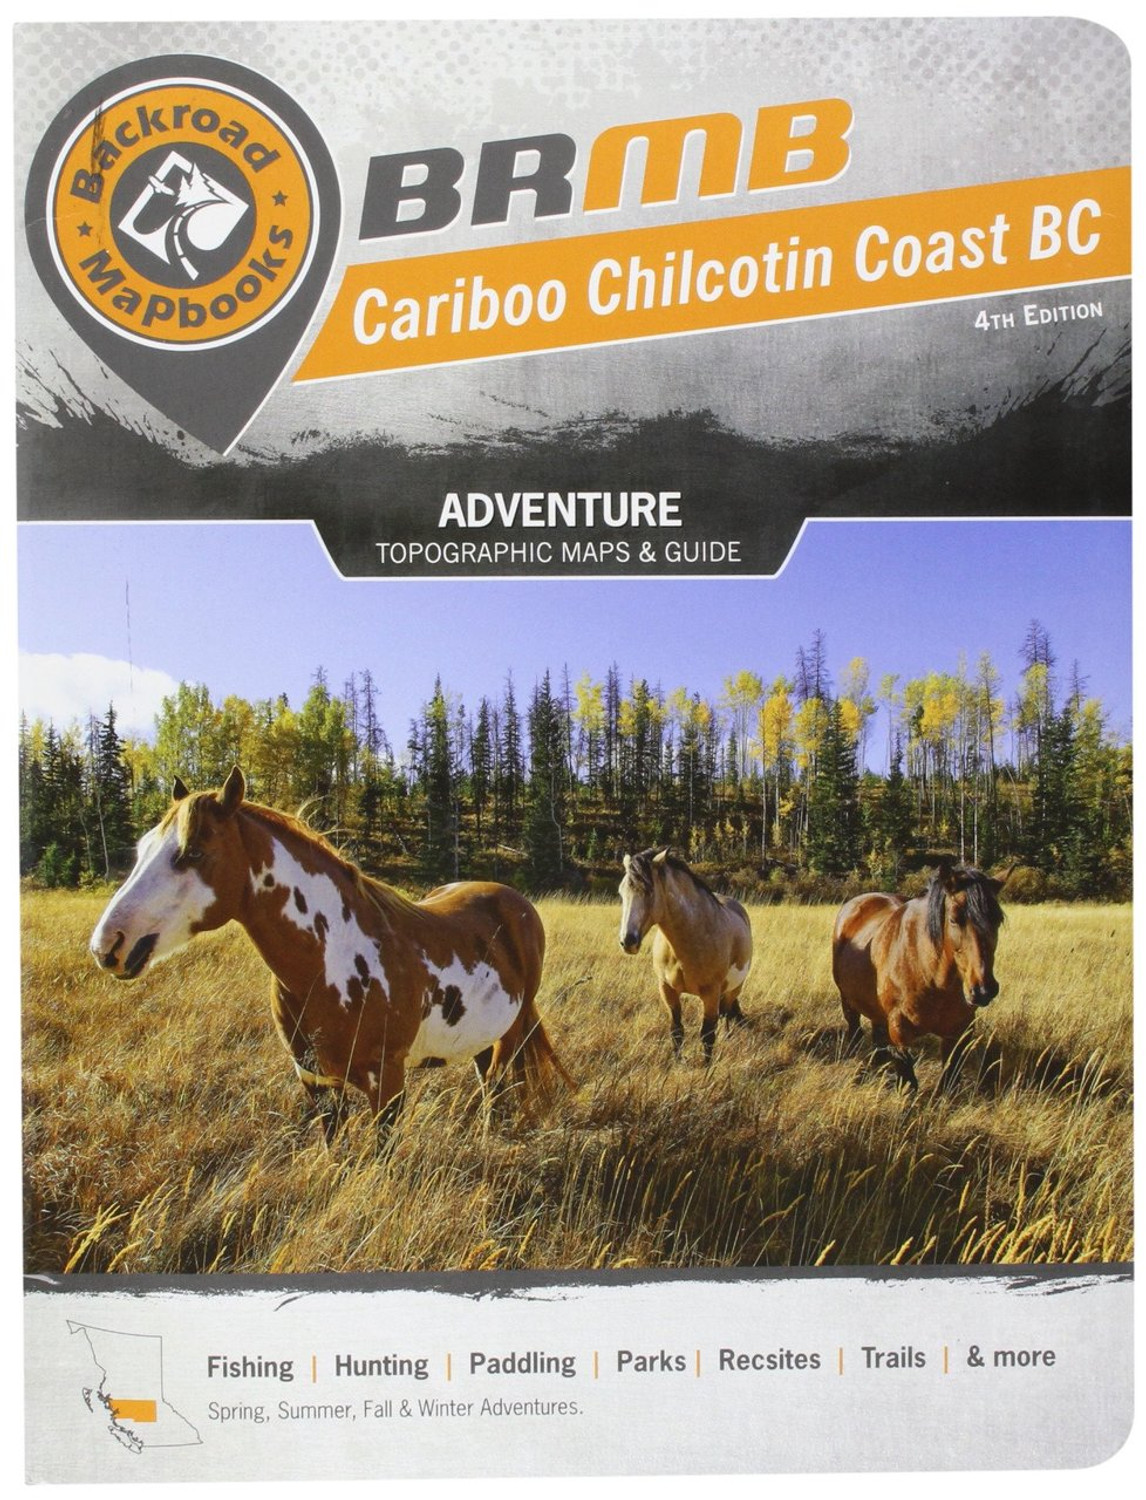 Cariboo Chilcoten Coast